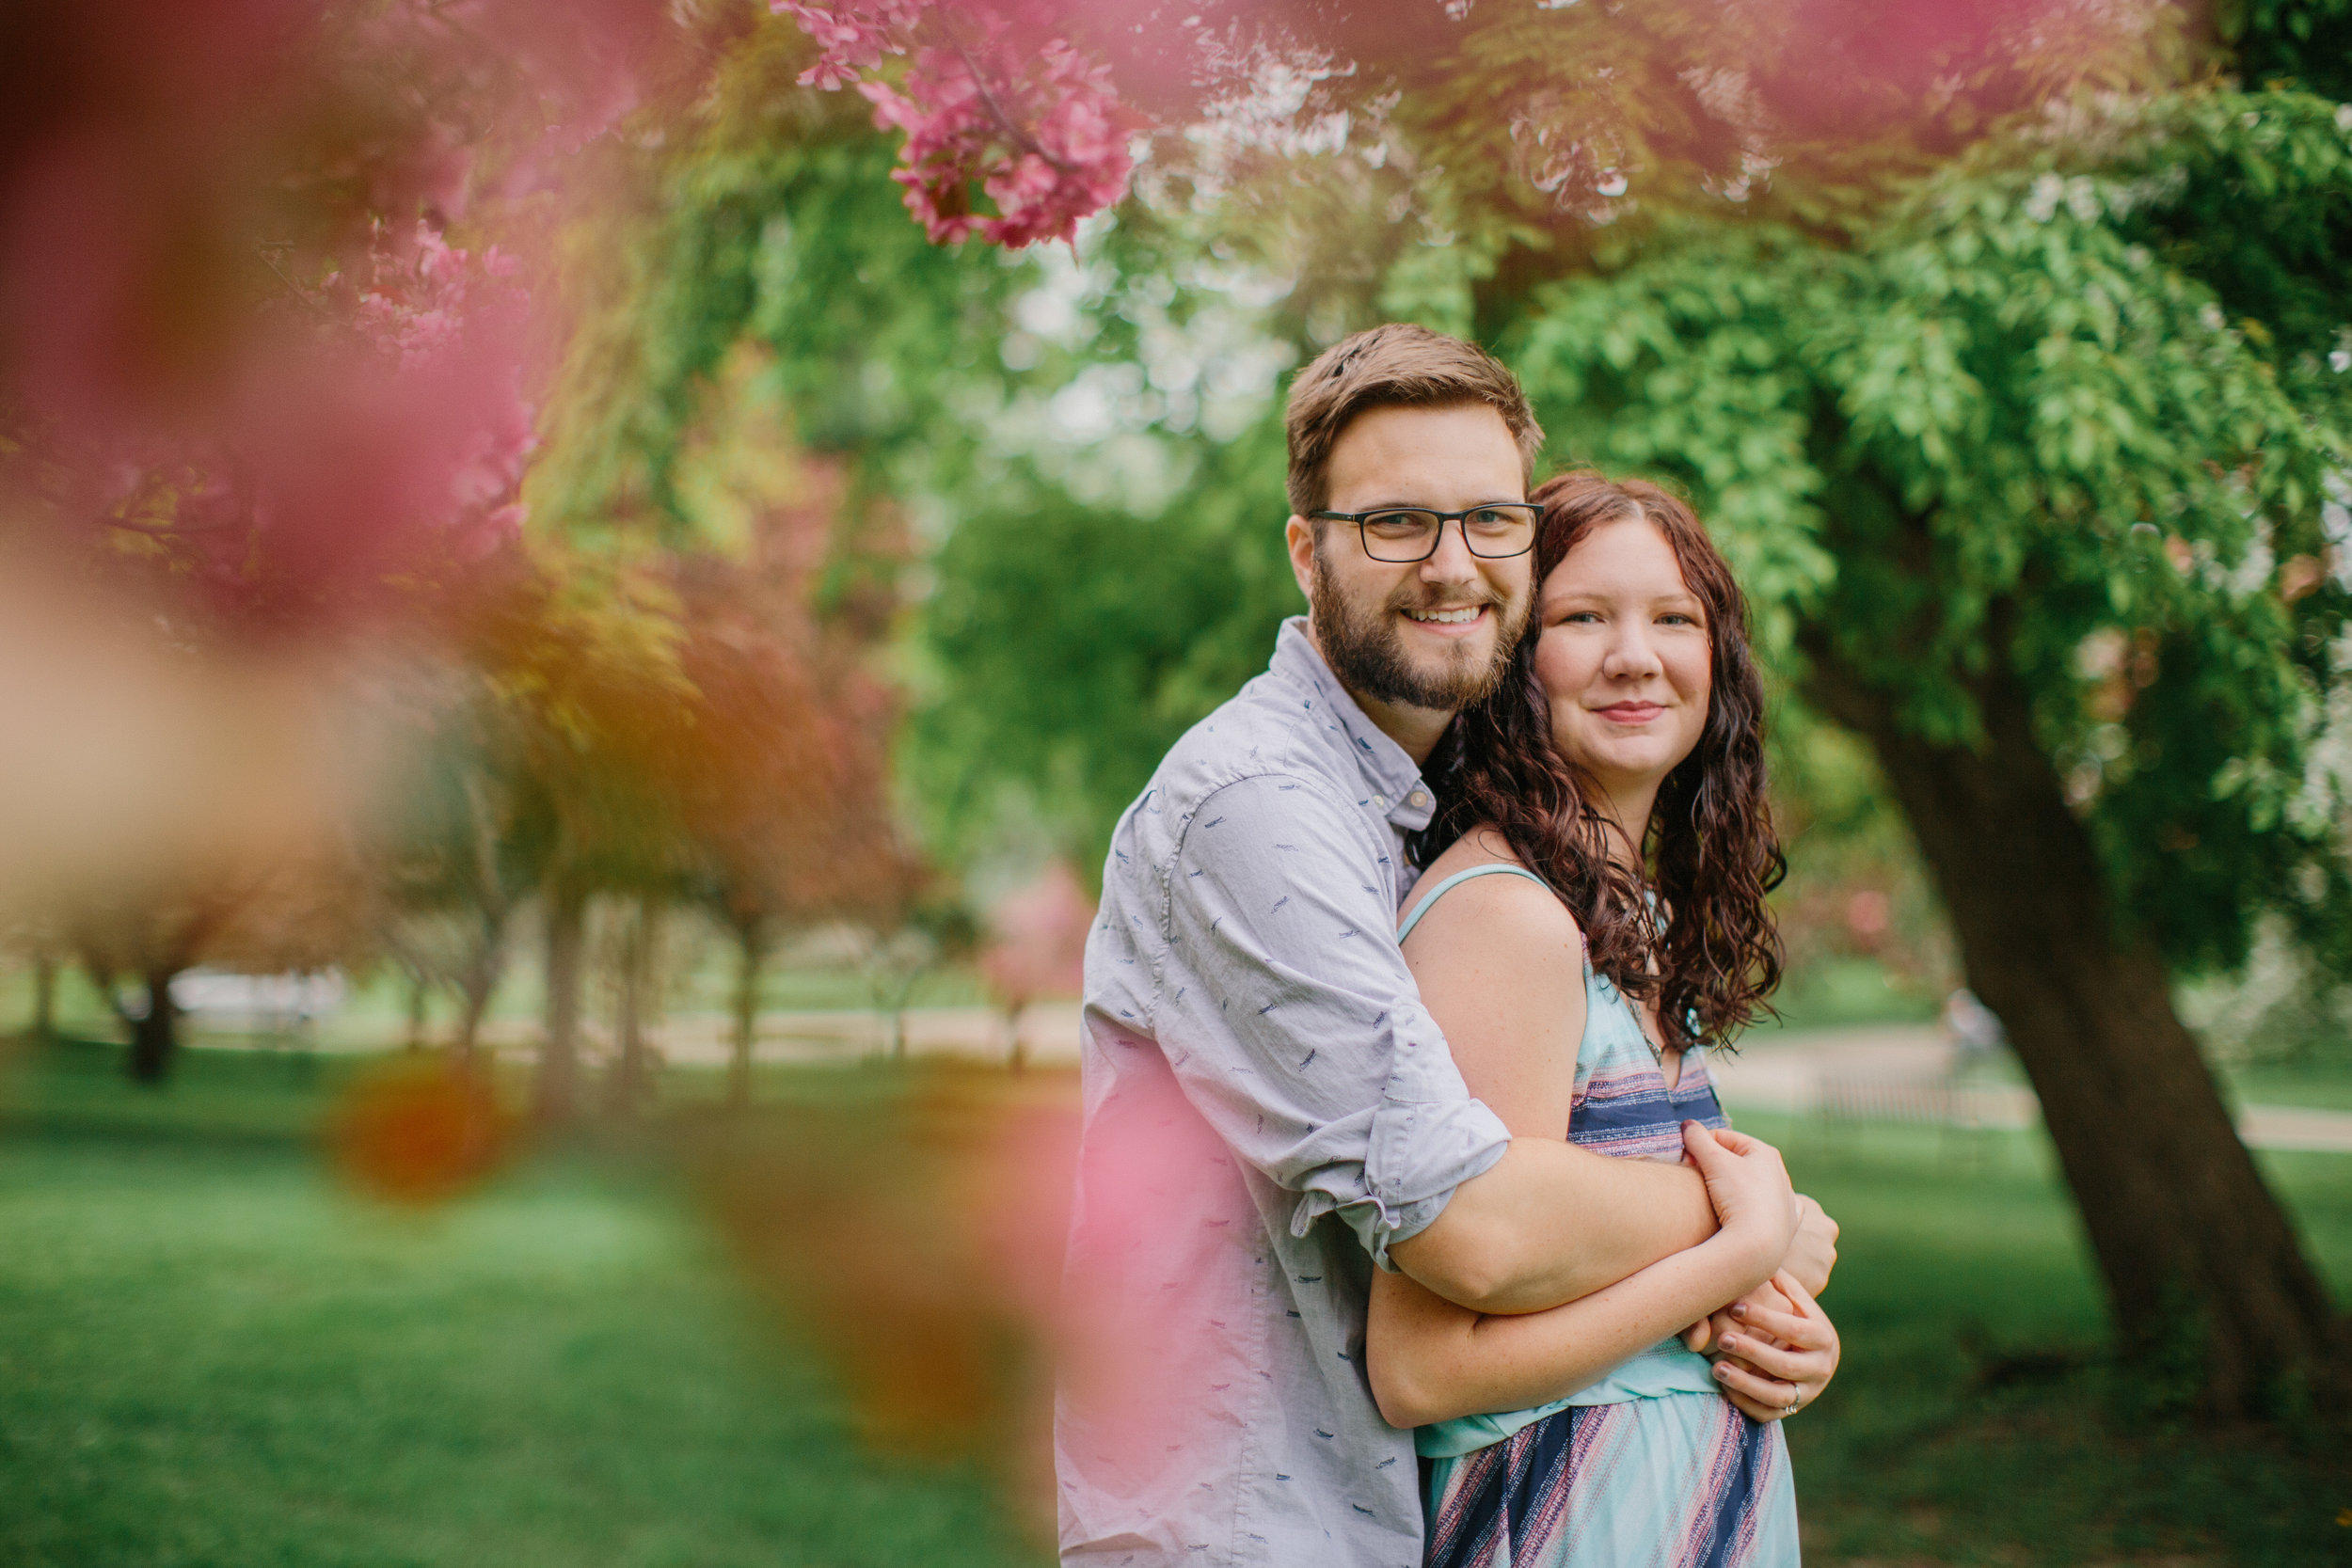 des moines iowa engagement and wedding photography amelia renee